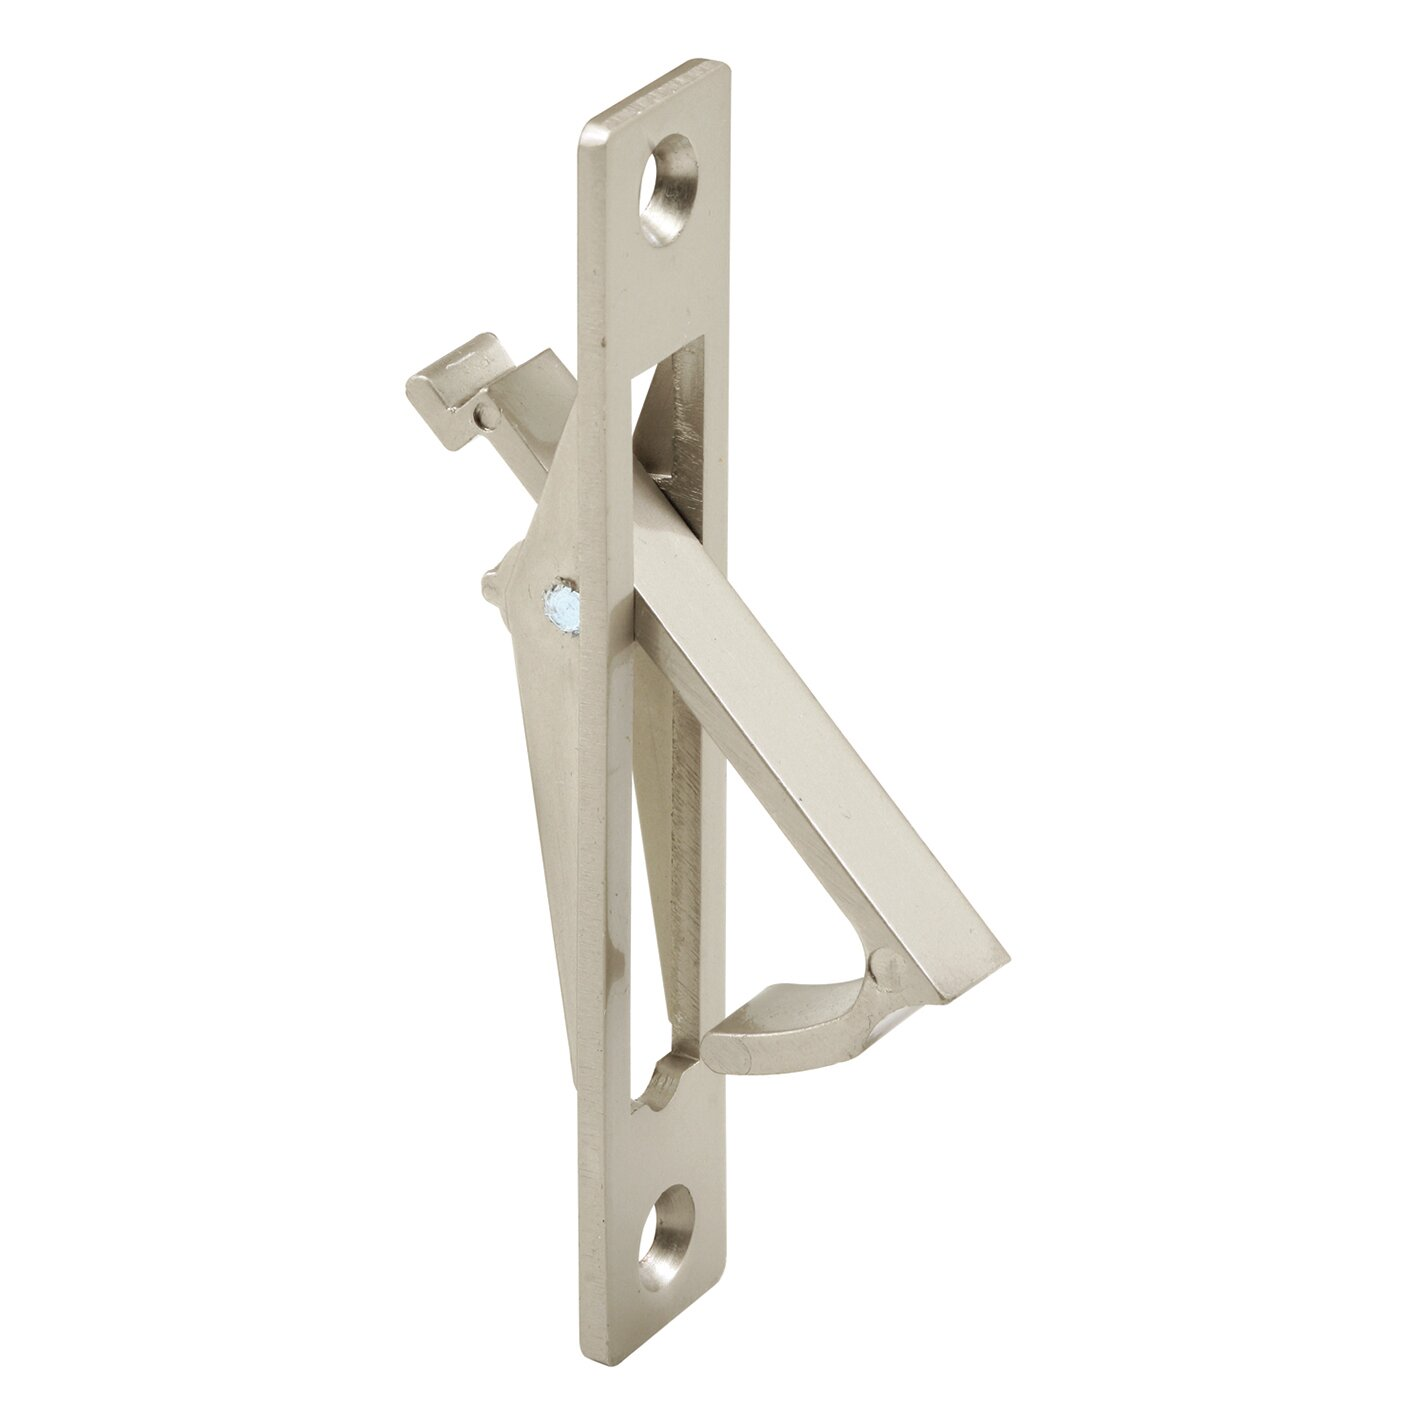 Primeline Mortise Pull Pocket Door Hardware Reviews Wayfair